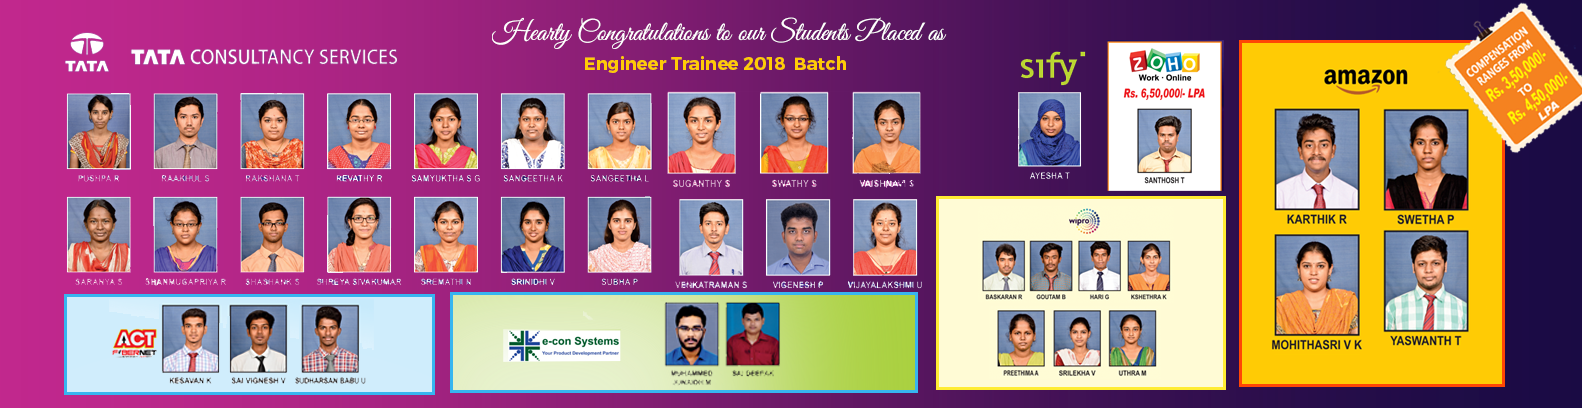 Engineer_trainee_2018_2-1